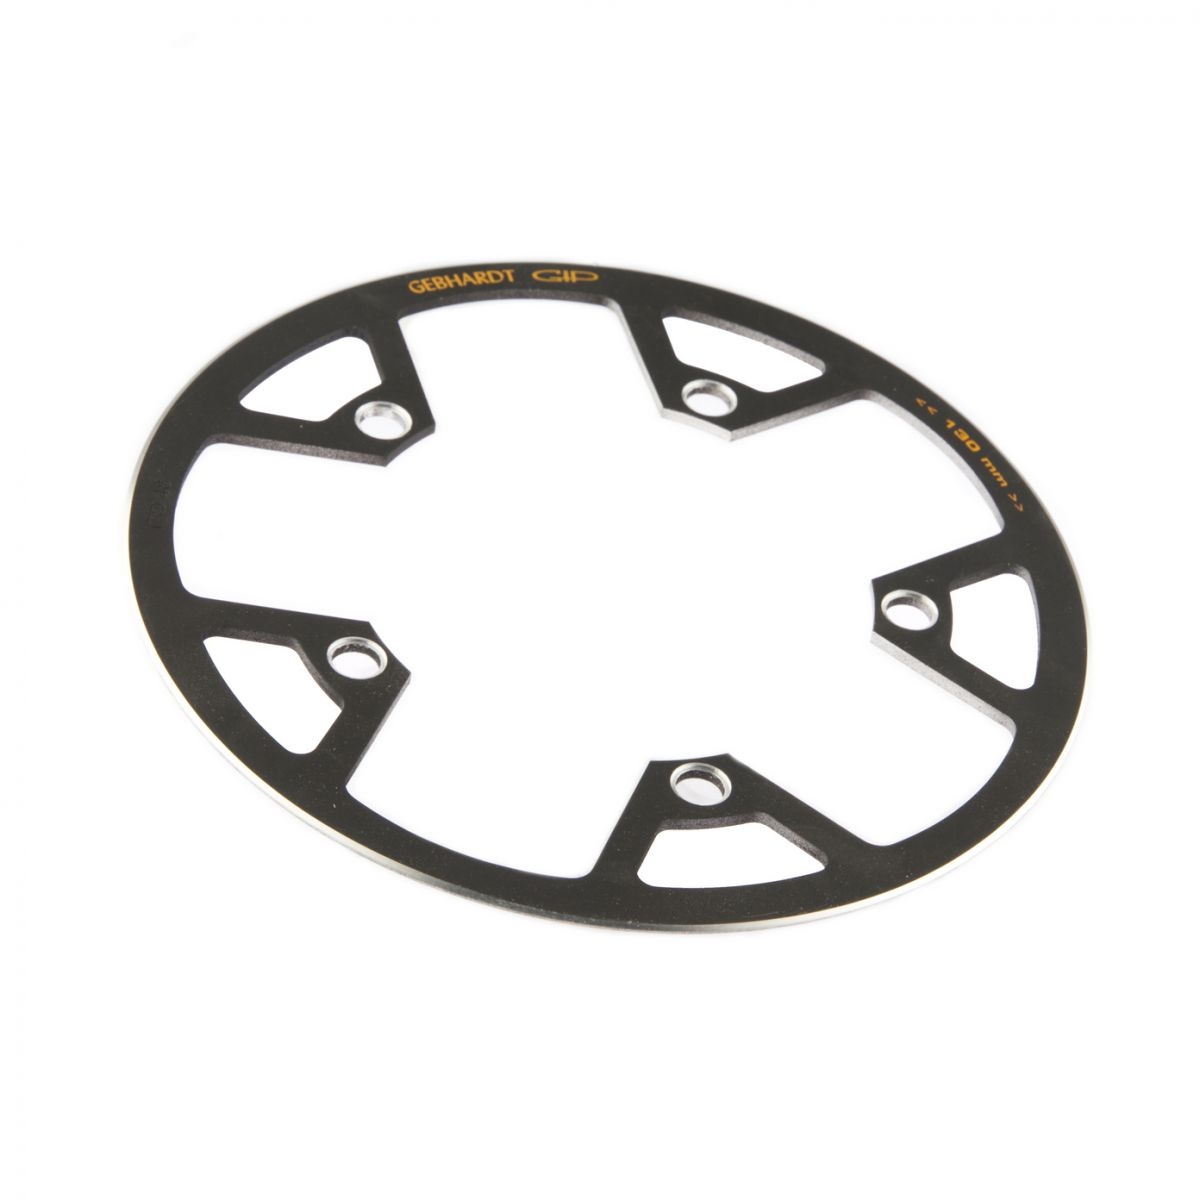 gebhardt chainring cover rock ring classic bcd 130 mm 5hole 48t black